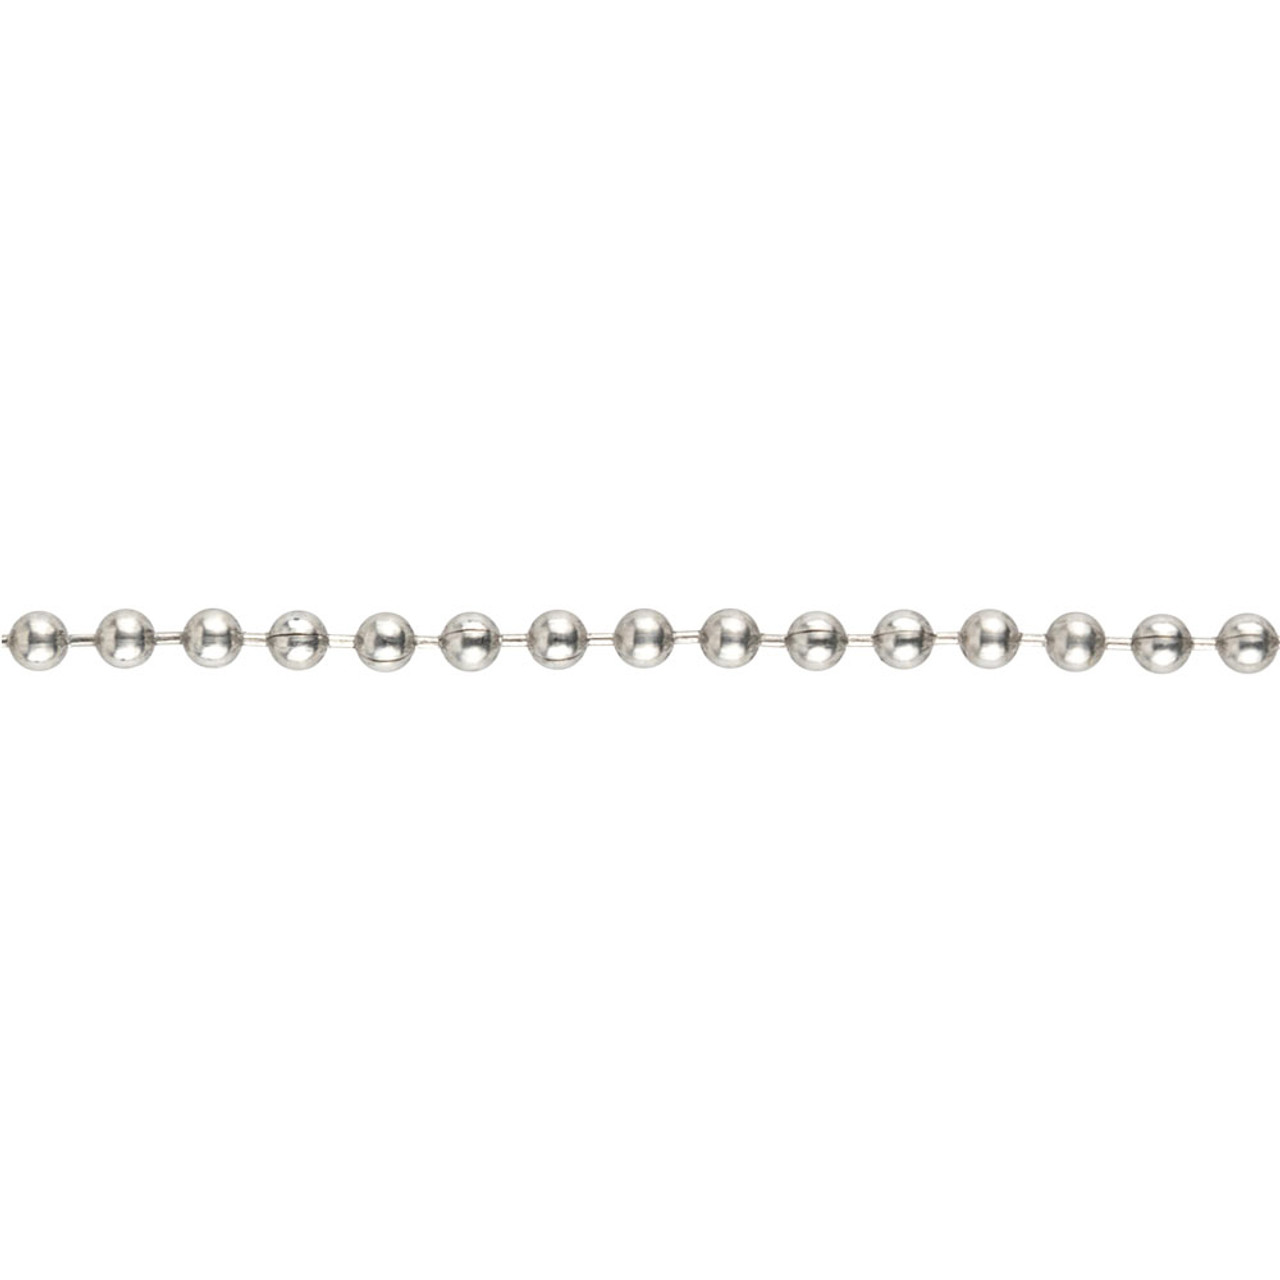 A strand of #3 stainless steel ball chain that shows the chain structure up close.